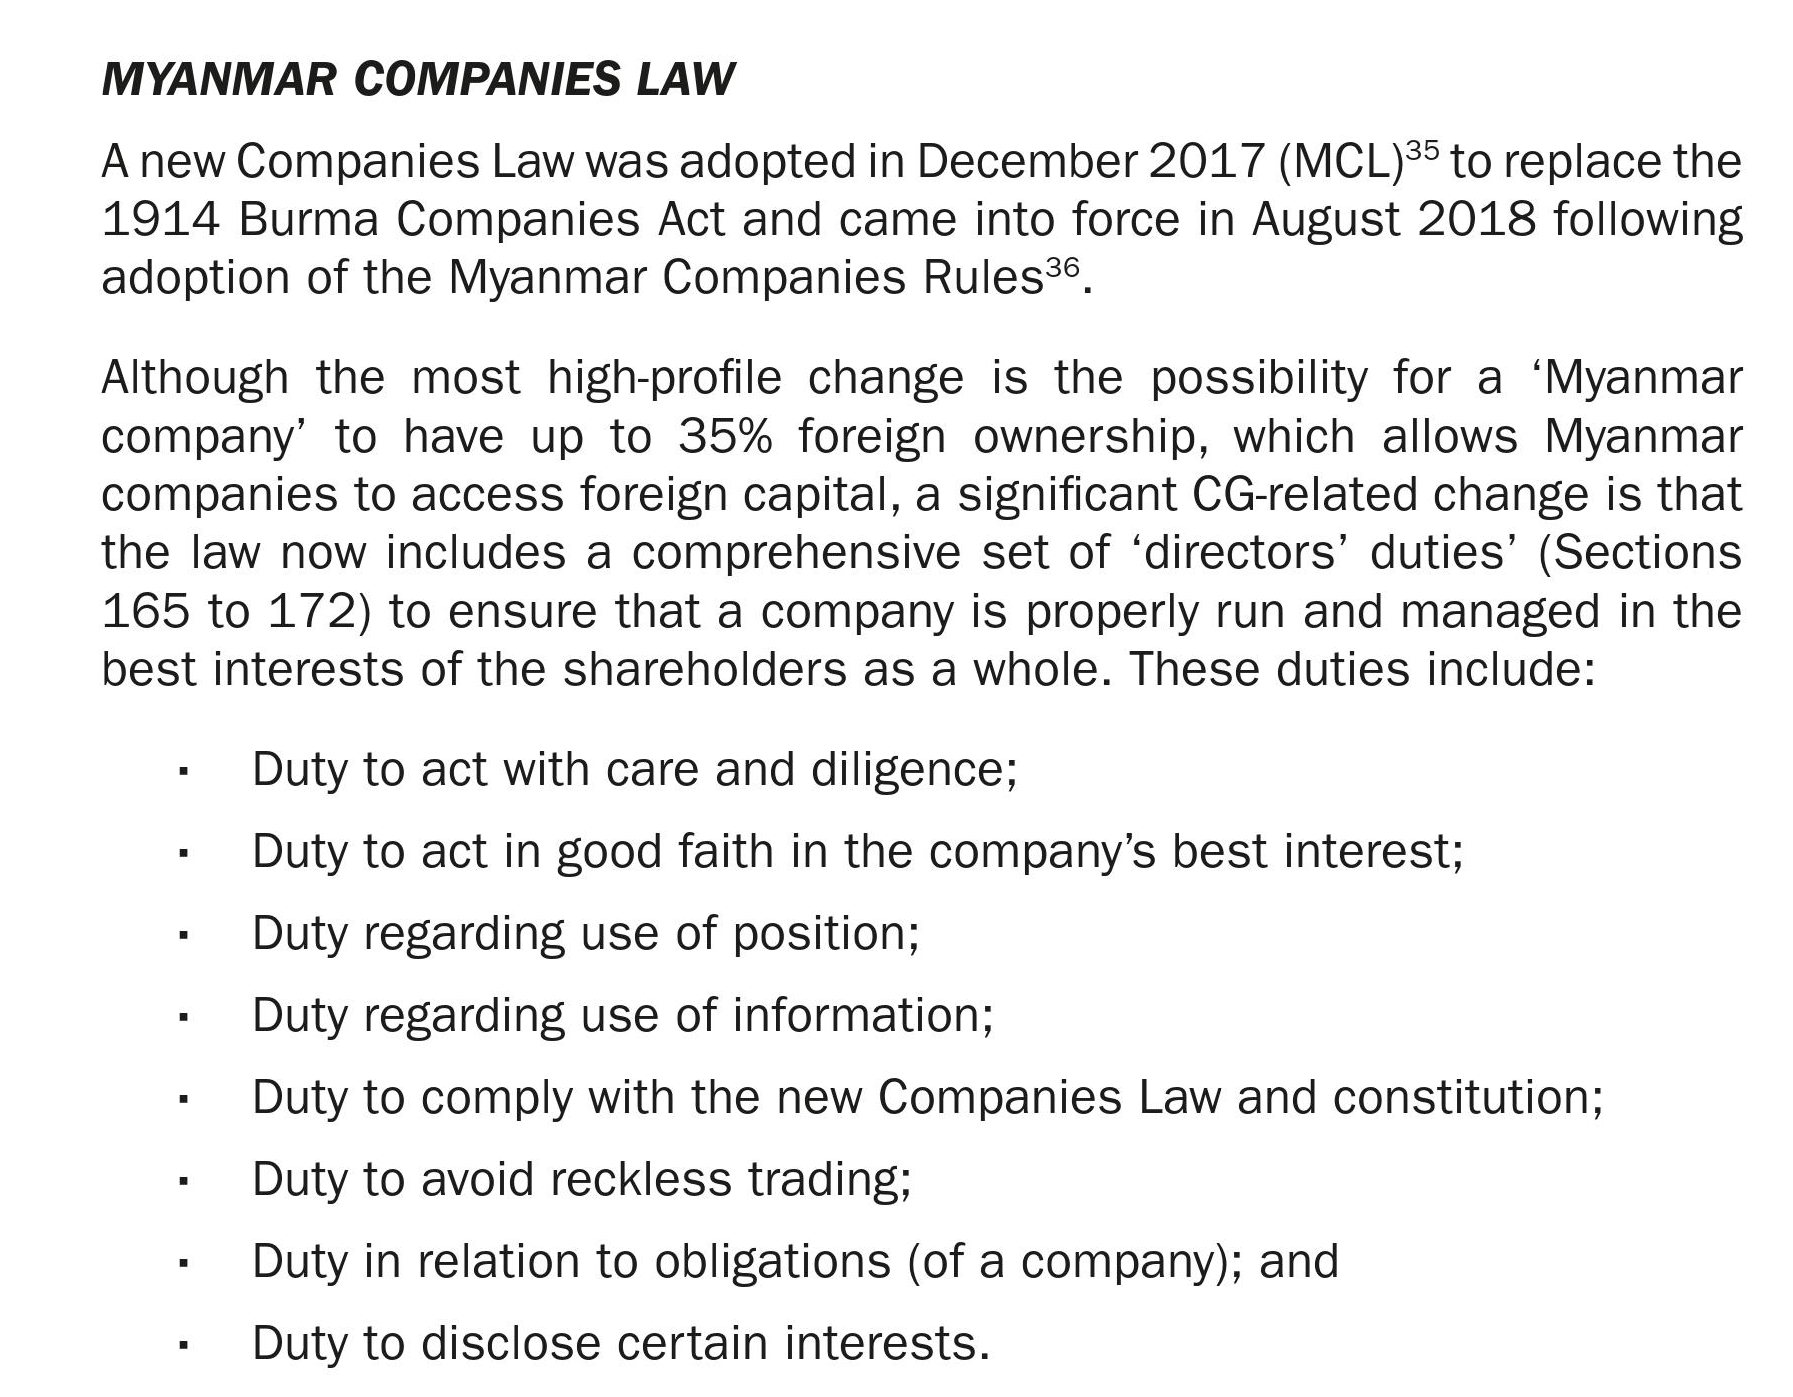 """The new Companies Law includes a comprehensive set of """"directors' duties"""" in Articles 165-172. Photo: Supplied"""